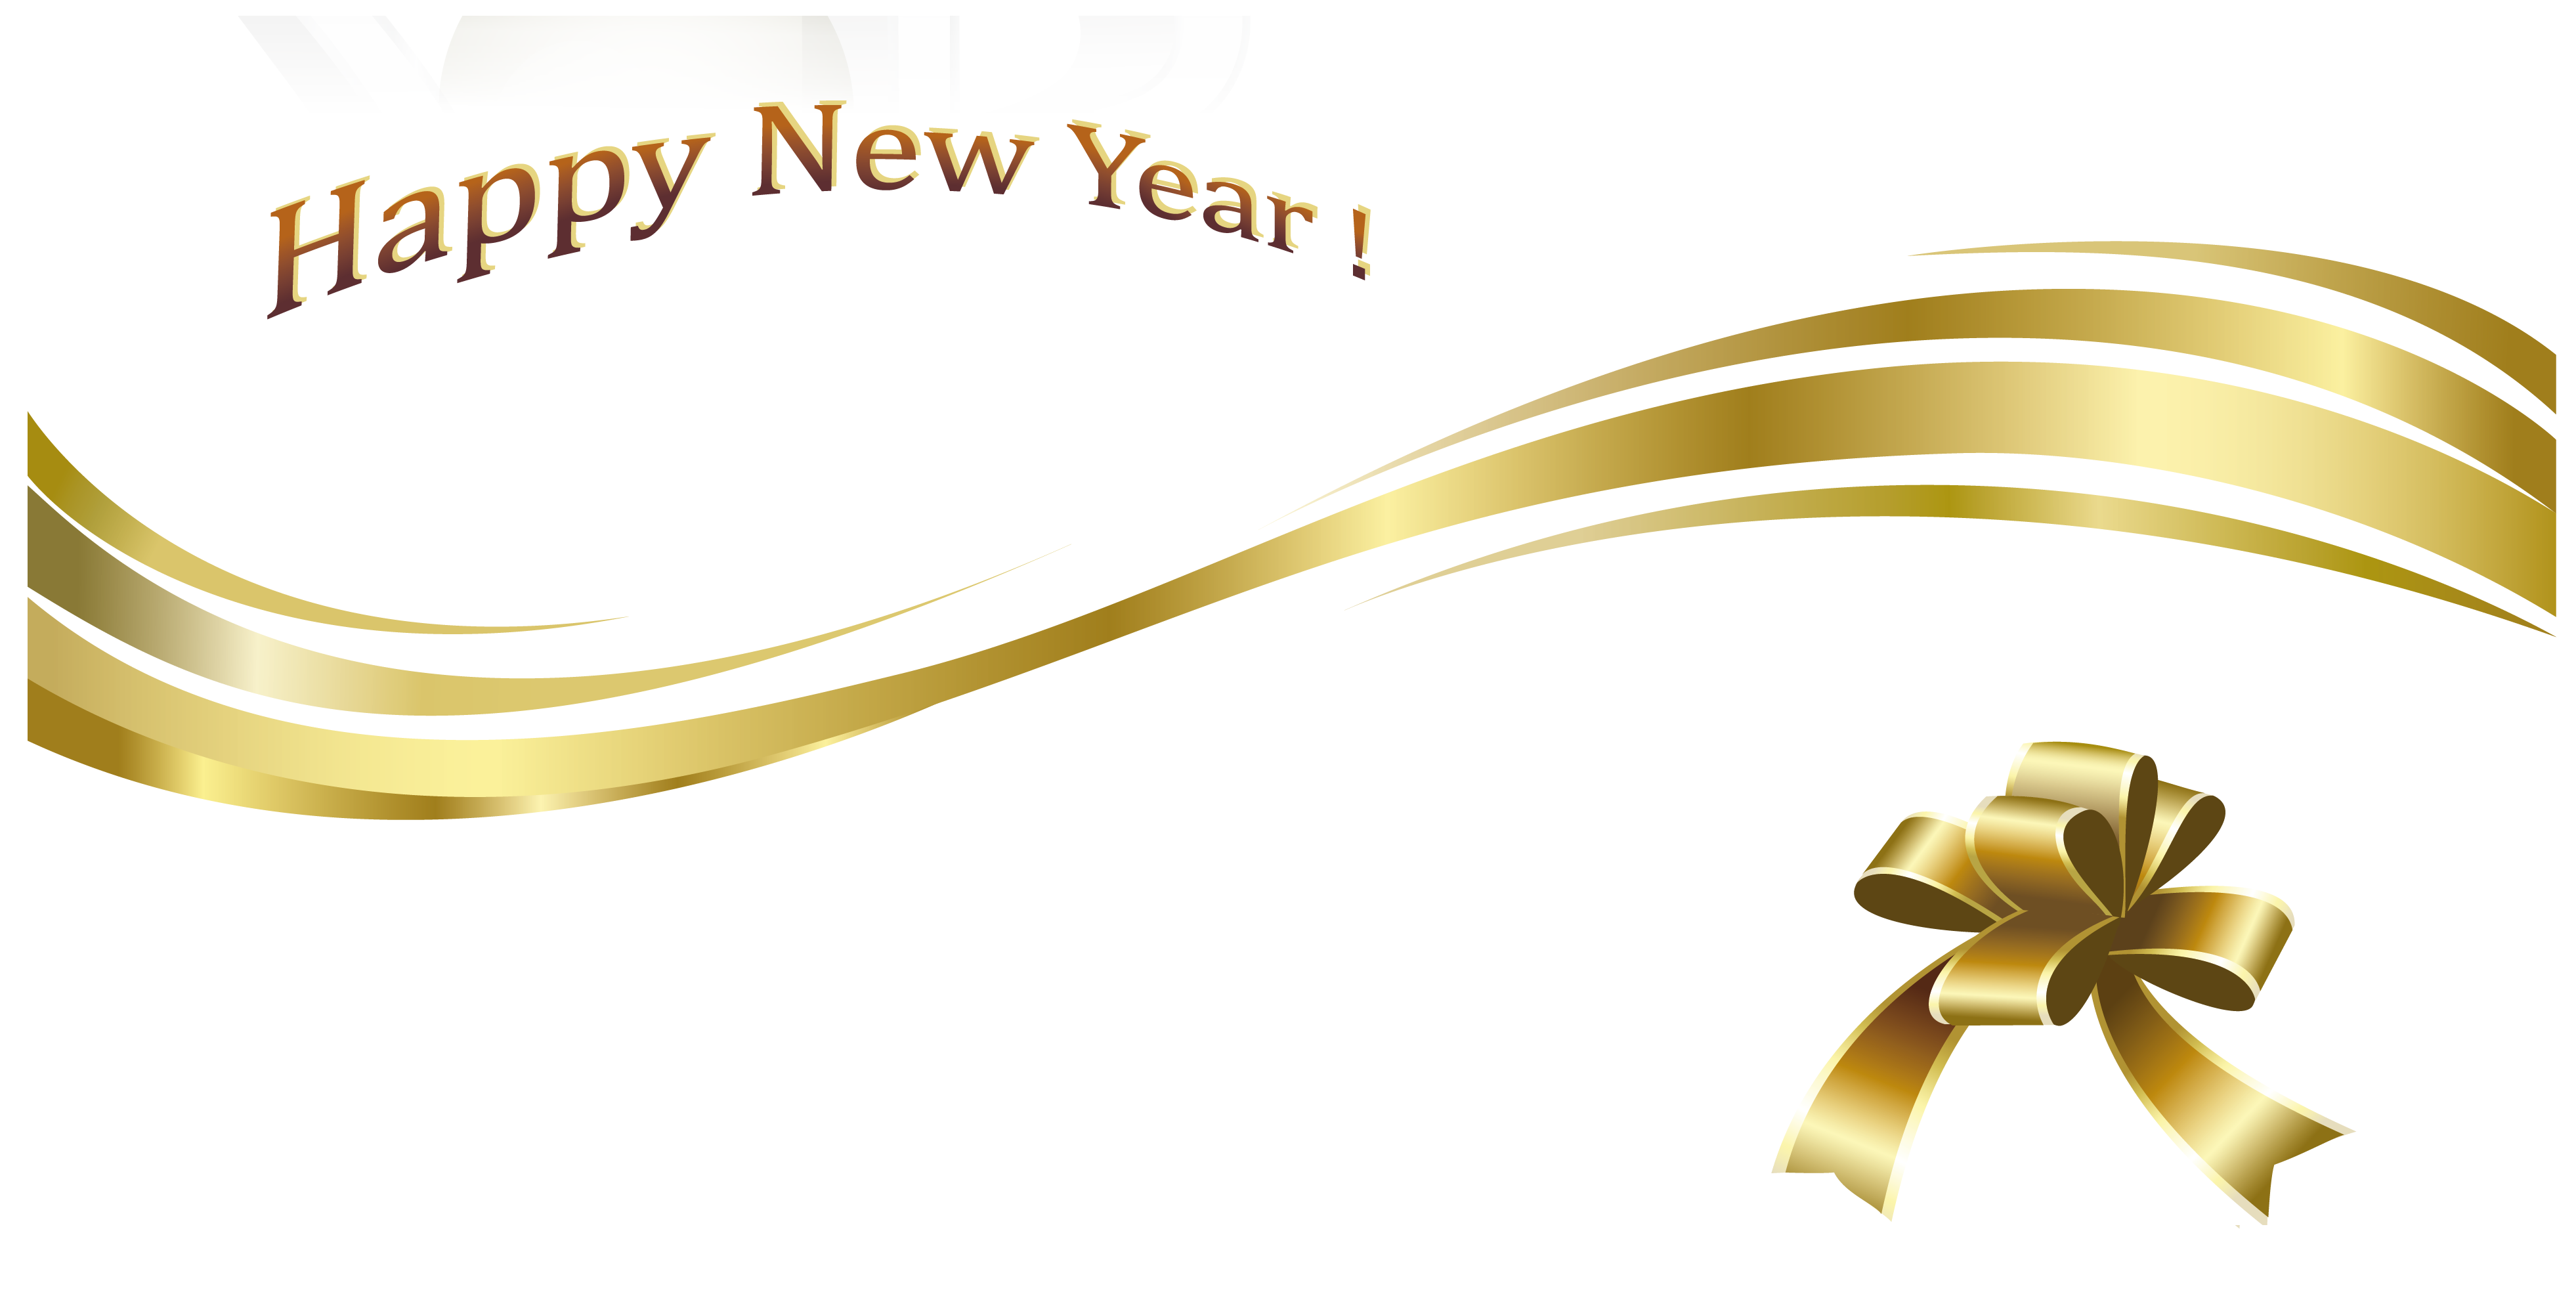 Happy gold text and. Clipart free new year